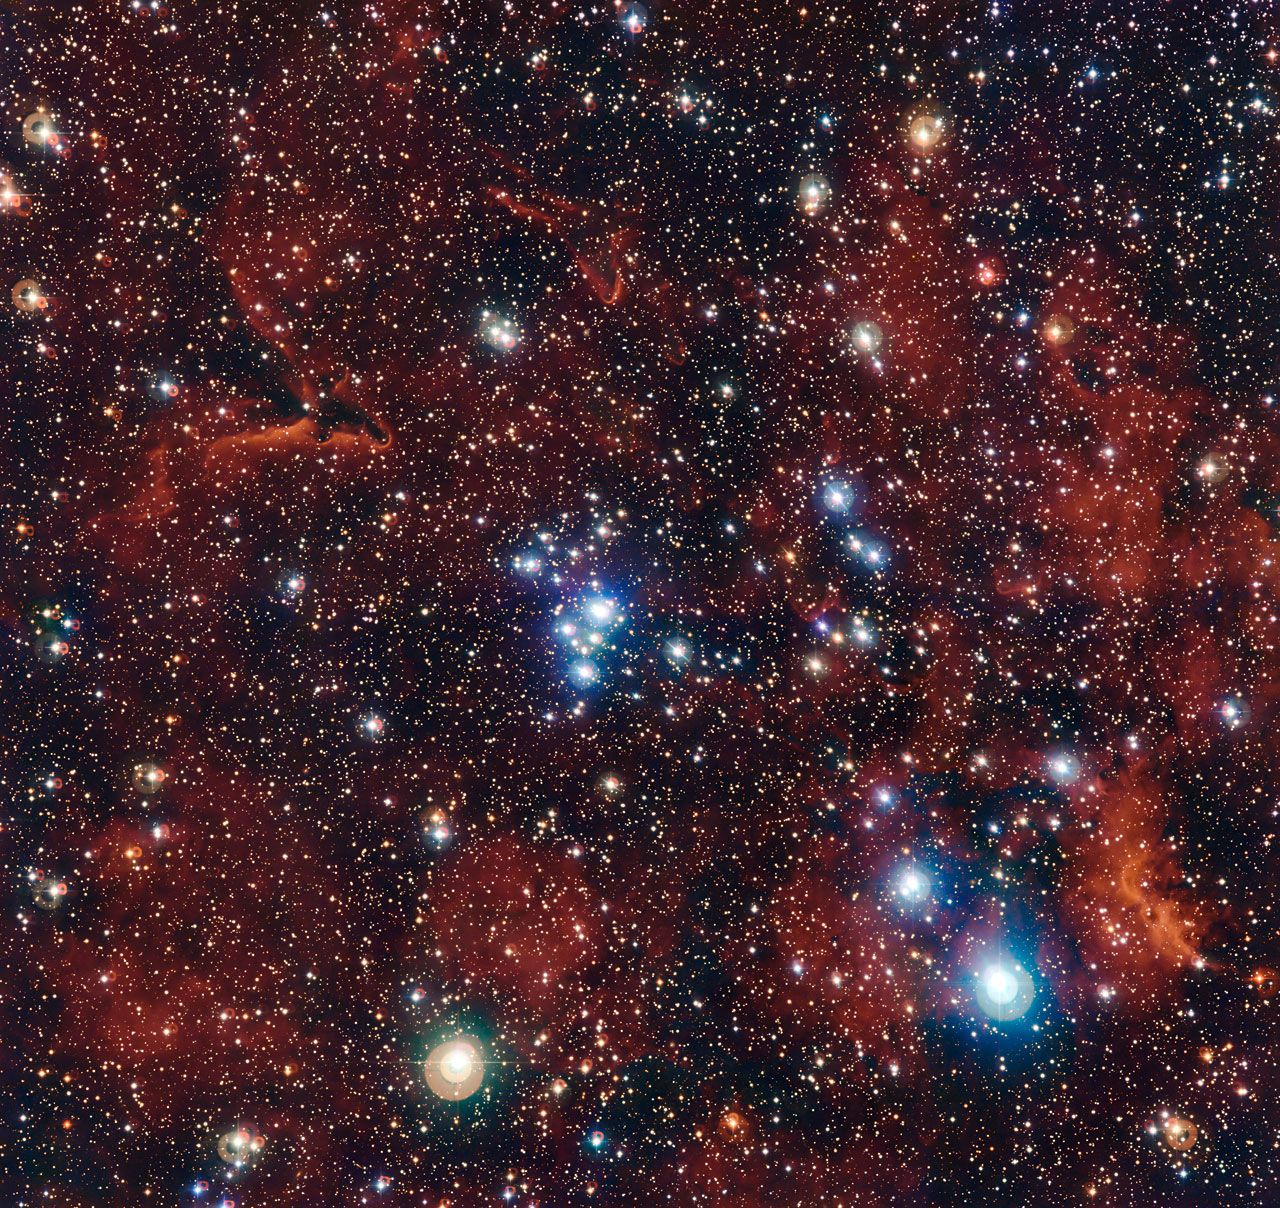 A cluster of bright, young blue stars shows up vividly against the red hydrogen gas of their surrounding stellar birthplace in a stunning photo out just in time for the Fourth of July.